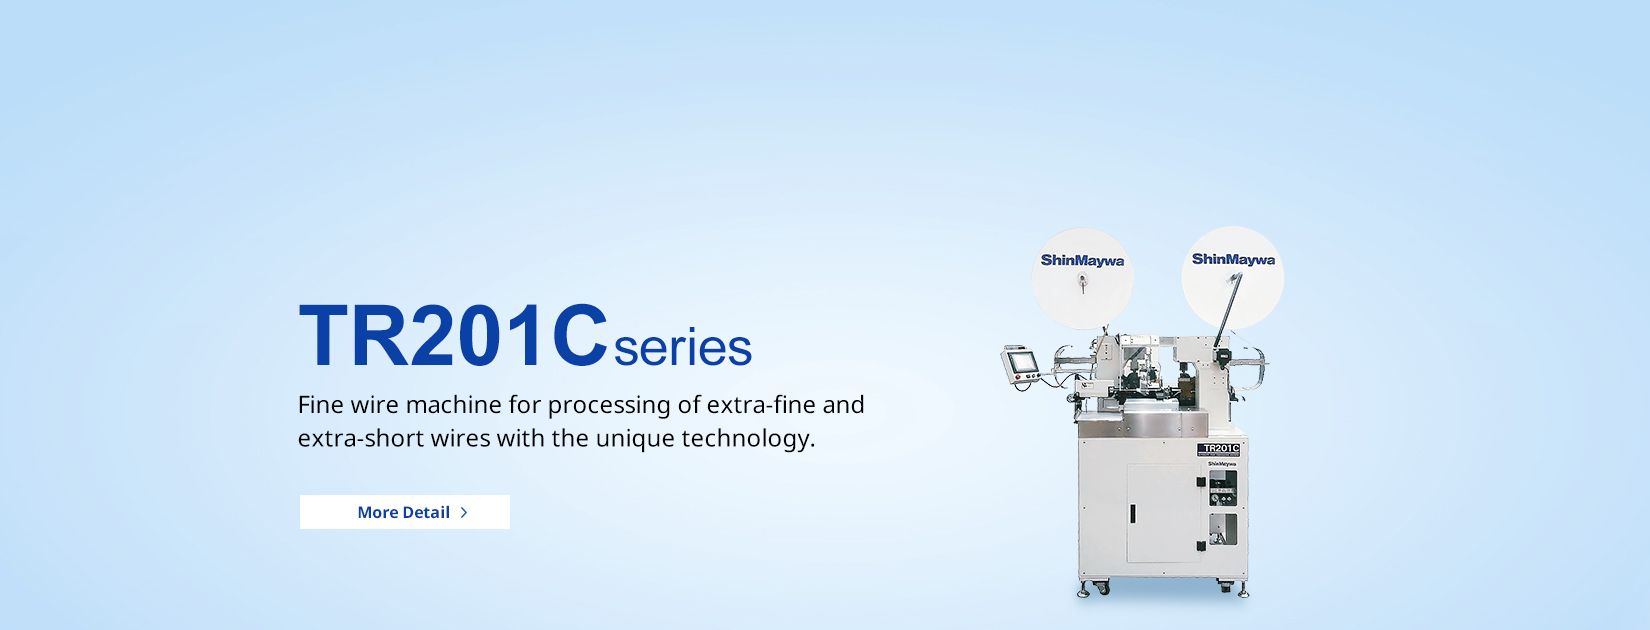 TR201 series Fine wire machine for processing of extra-fine and extra-short wires with the unique technology.